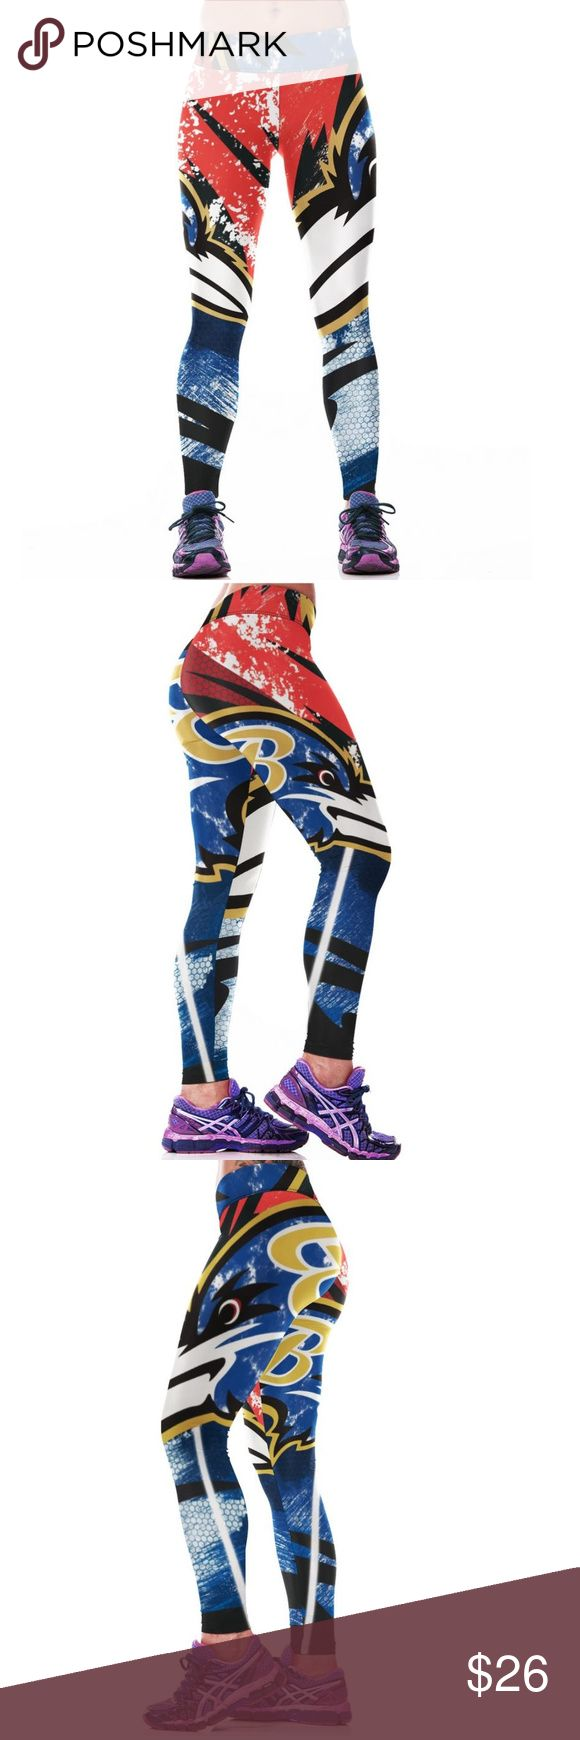 Baltimore Ravens NFL Leggings Root for your favorite team in these high quality NFL leggings! Perfect wardrobe addition while watching Sunday football games. The vivid colors and designs are sure to turn heads! Get a pair now while they last to show your team support every week as they inch their way to the glorious Super Bowl Condition: Brand New in Packaging Material: Spandex / Polyester Measurements:  (Length / Waist / Hip) S/M: 36 / 27.5-37 / 33-41.5 L/XL: 36.5 / 30–39.5 / 35.5-44 Price…